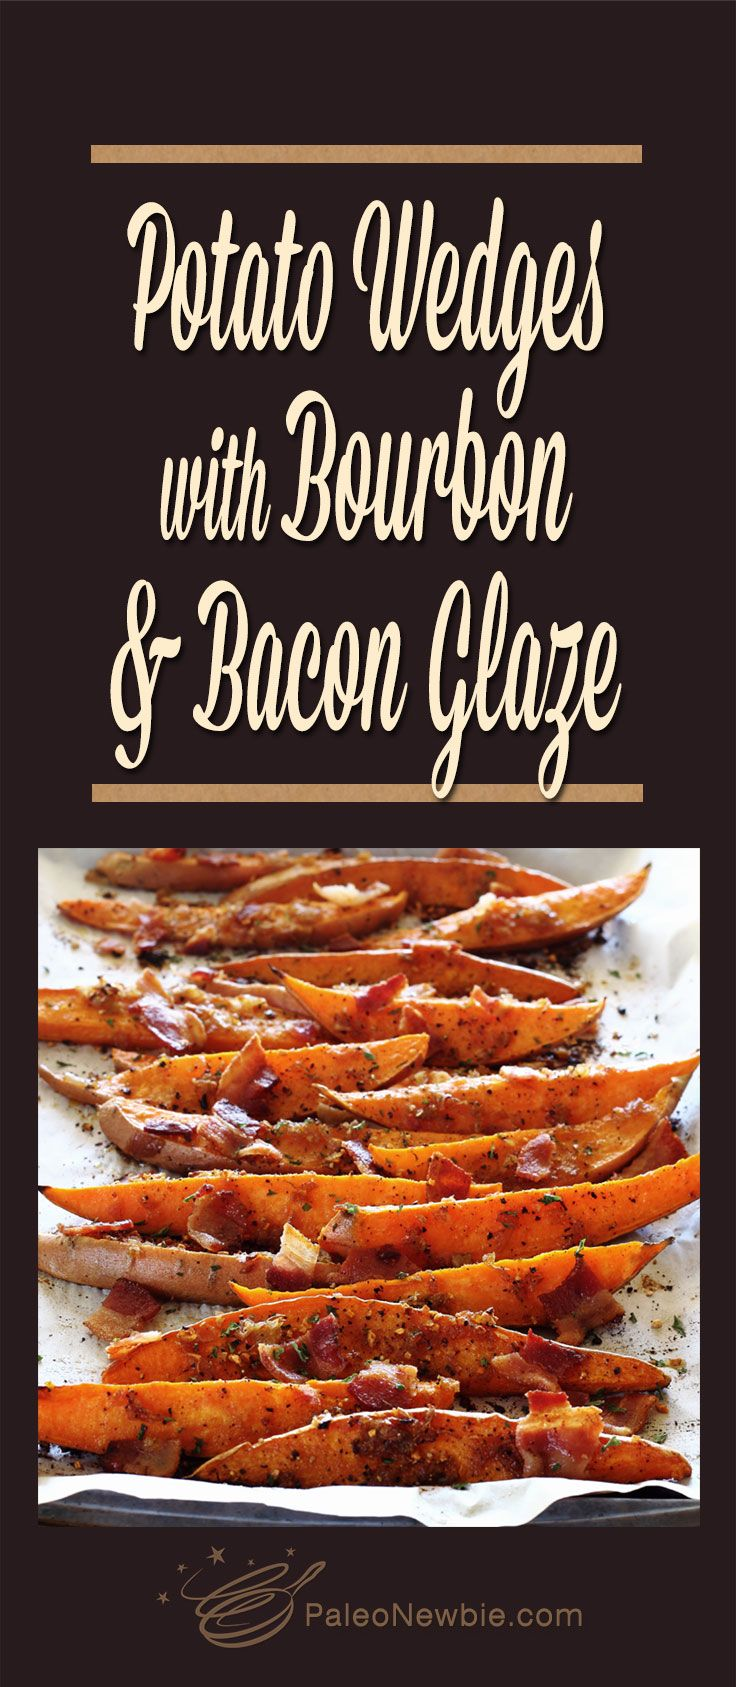 Old-fashioned roasted potato wedges served a little fancier with a savory bourbon and bacon sauce.